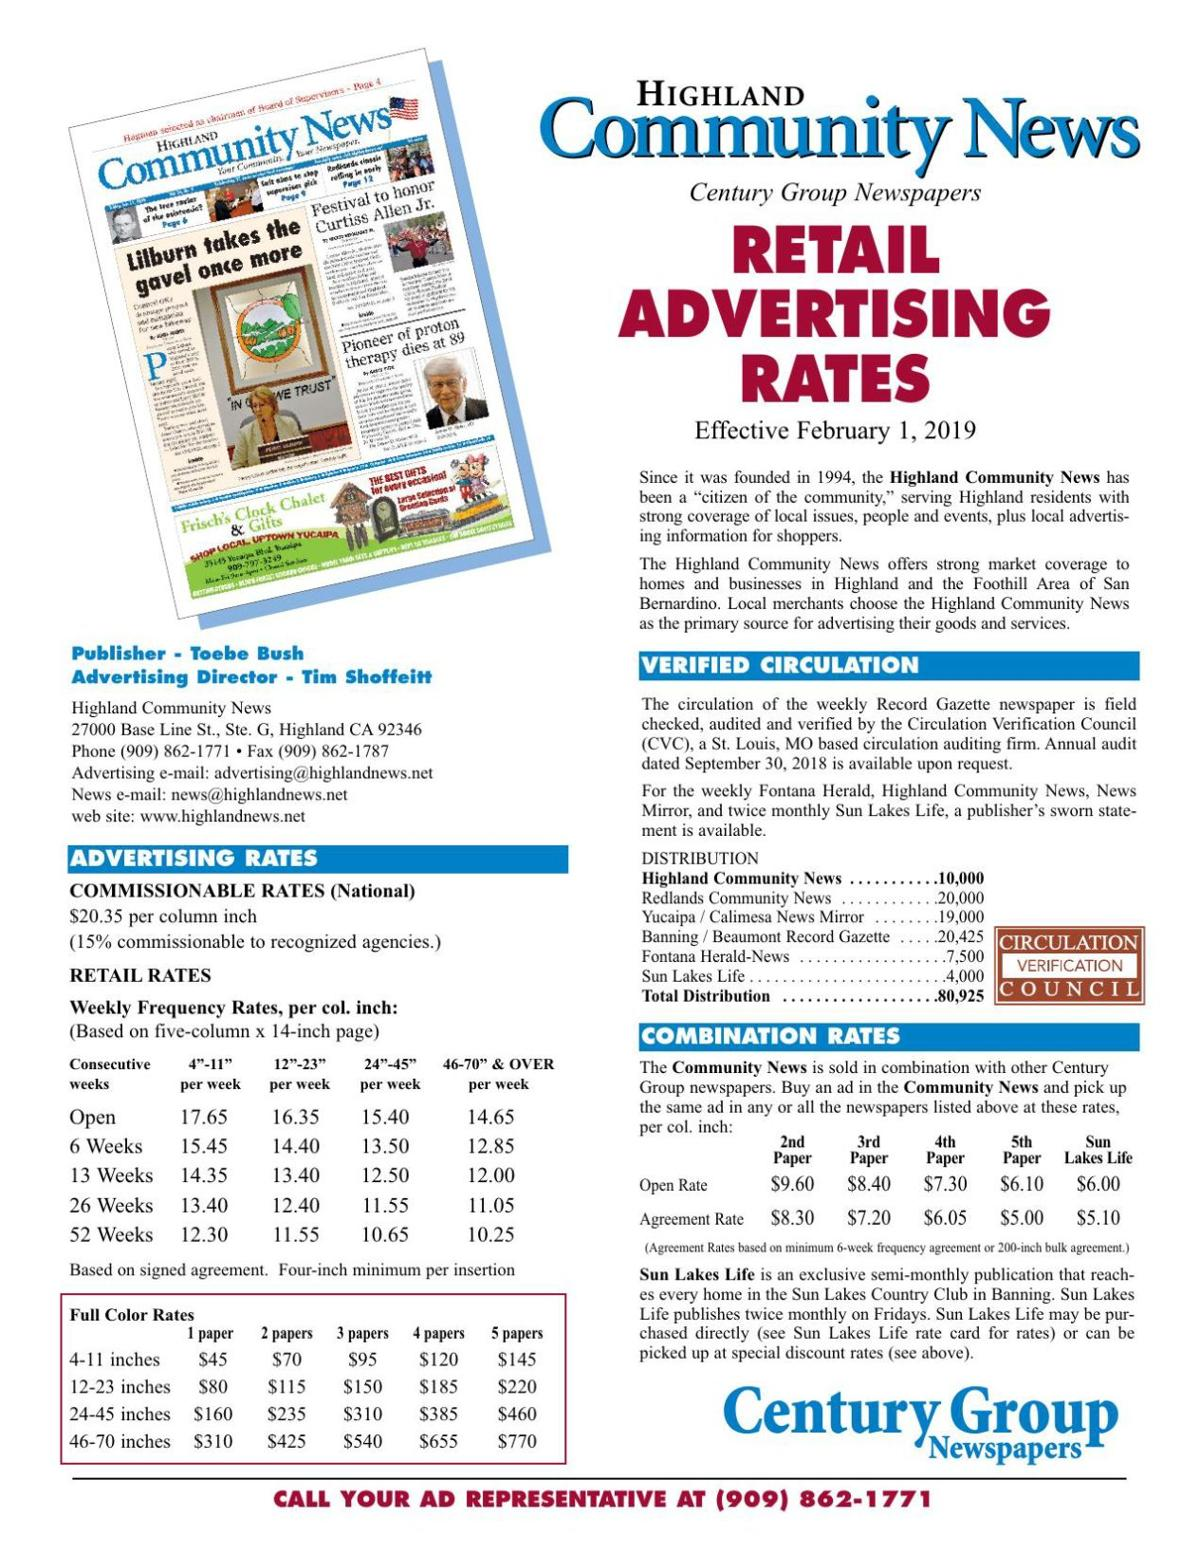 Retail Advertising Rates